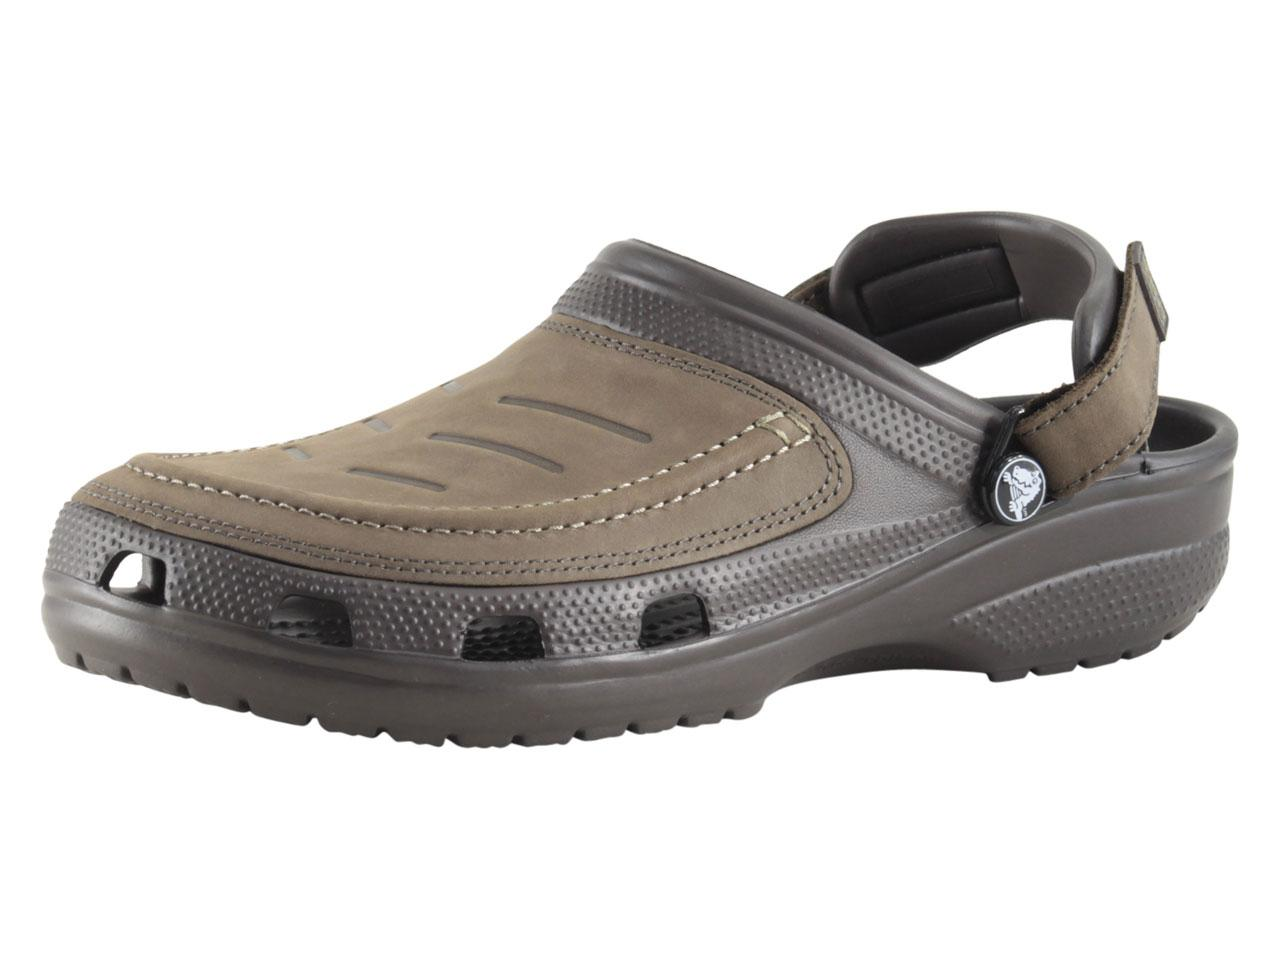 9498daad579ed5 Crocs Men s Yukon Vista Clogs Sandals Shoes